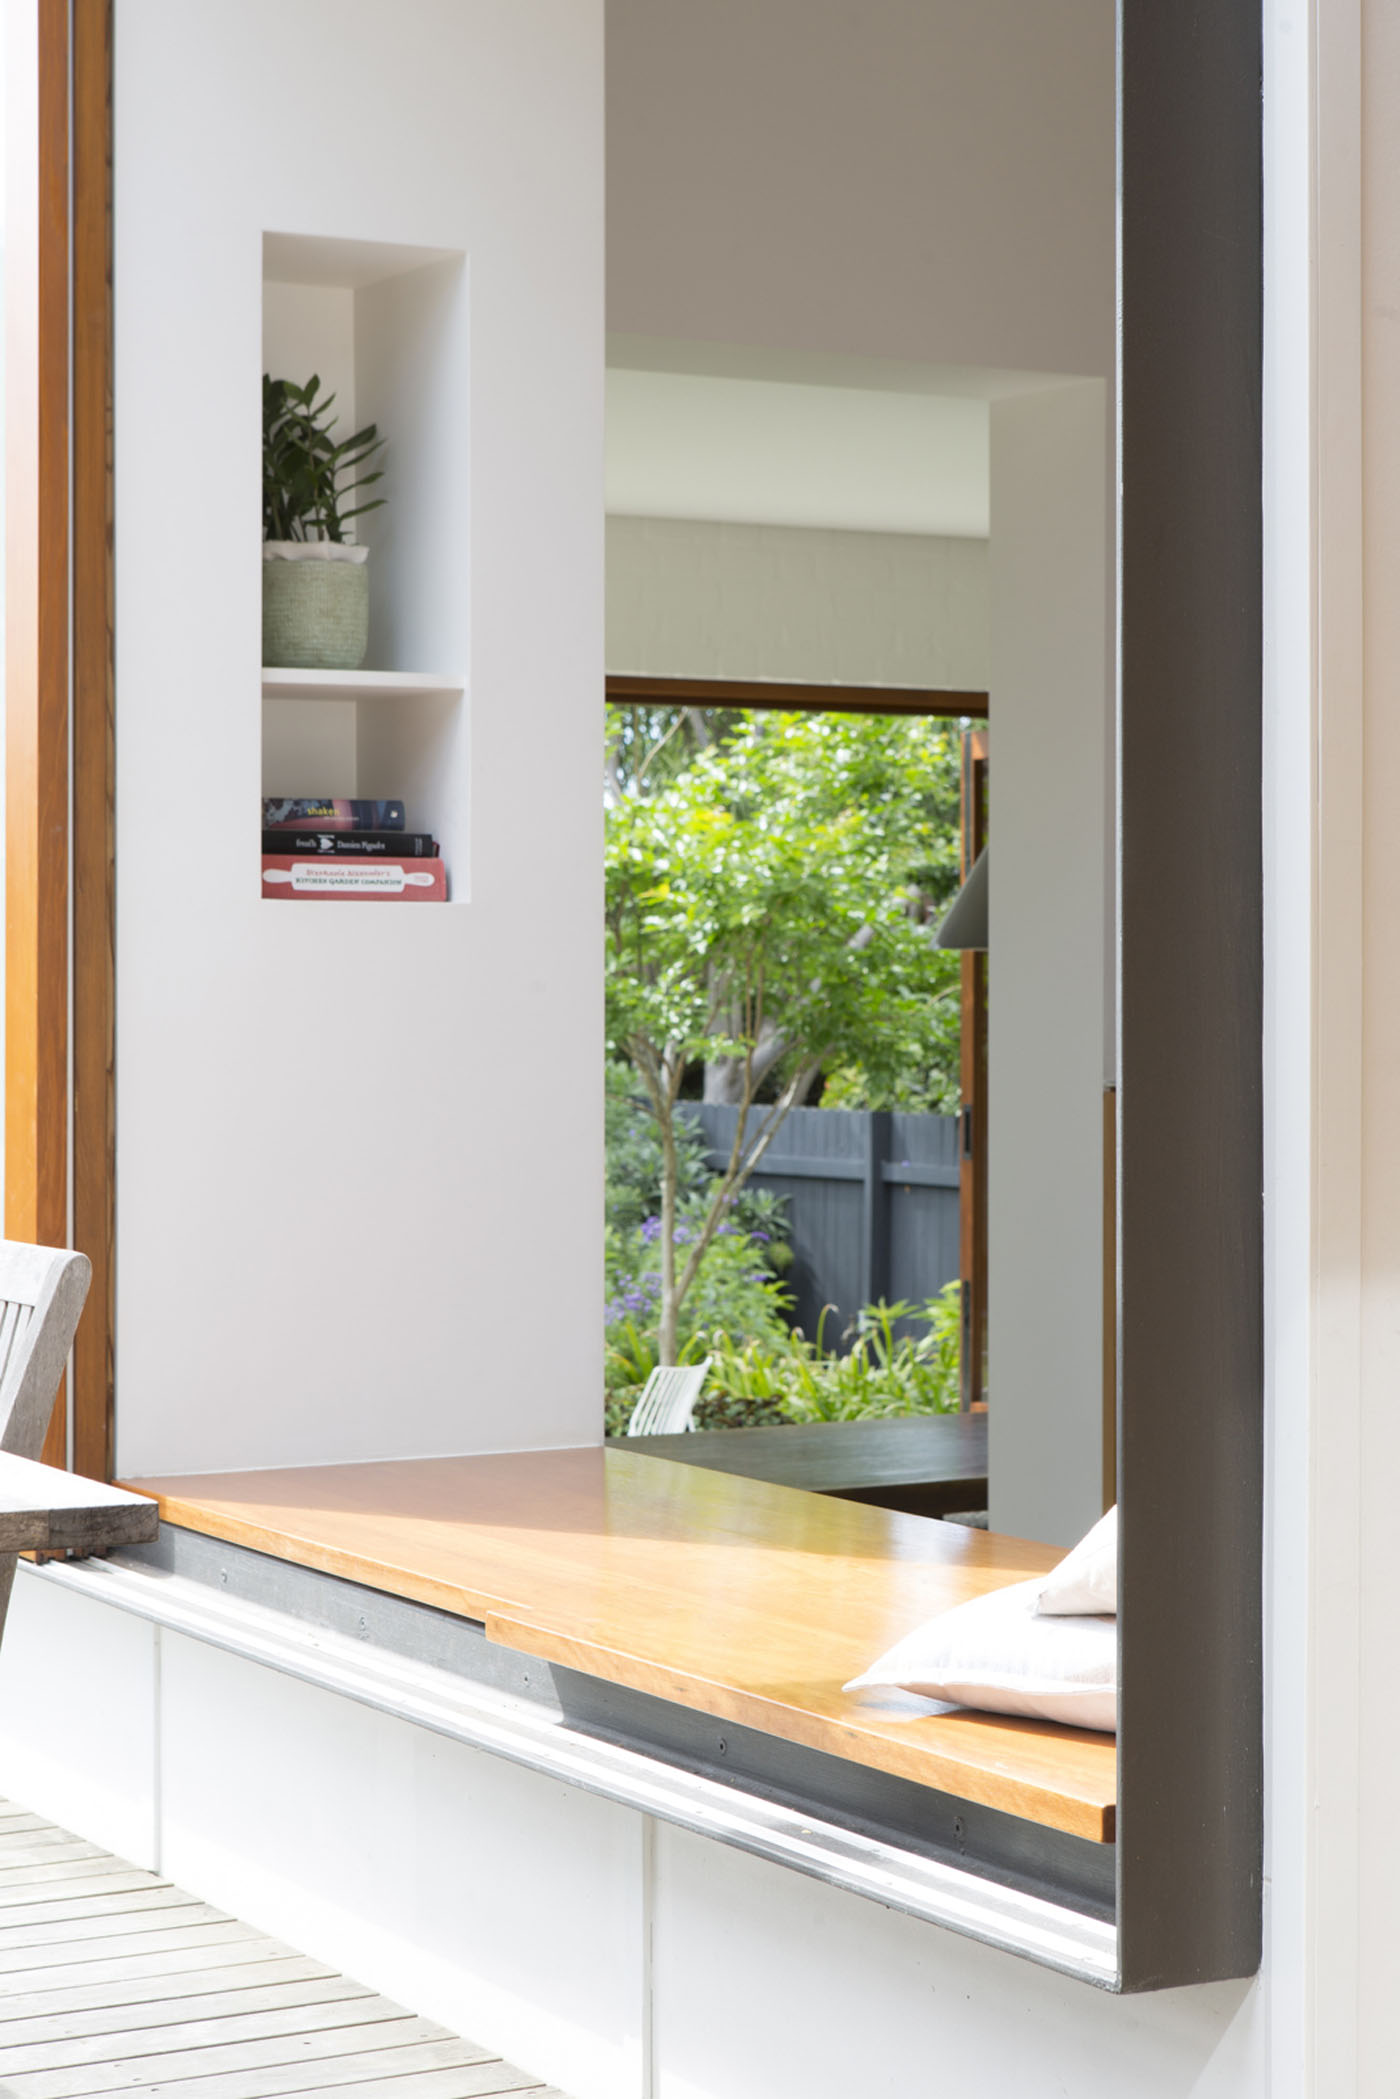 Denney House by Sam Crawford Architects, detail of the timber window seat